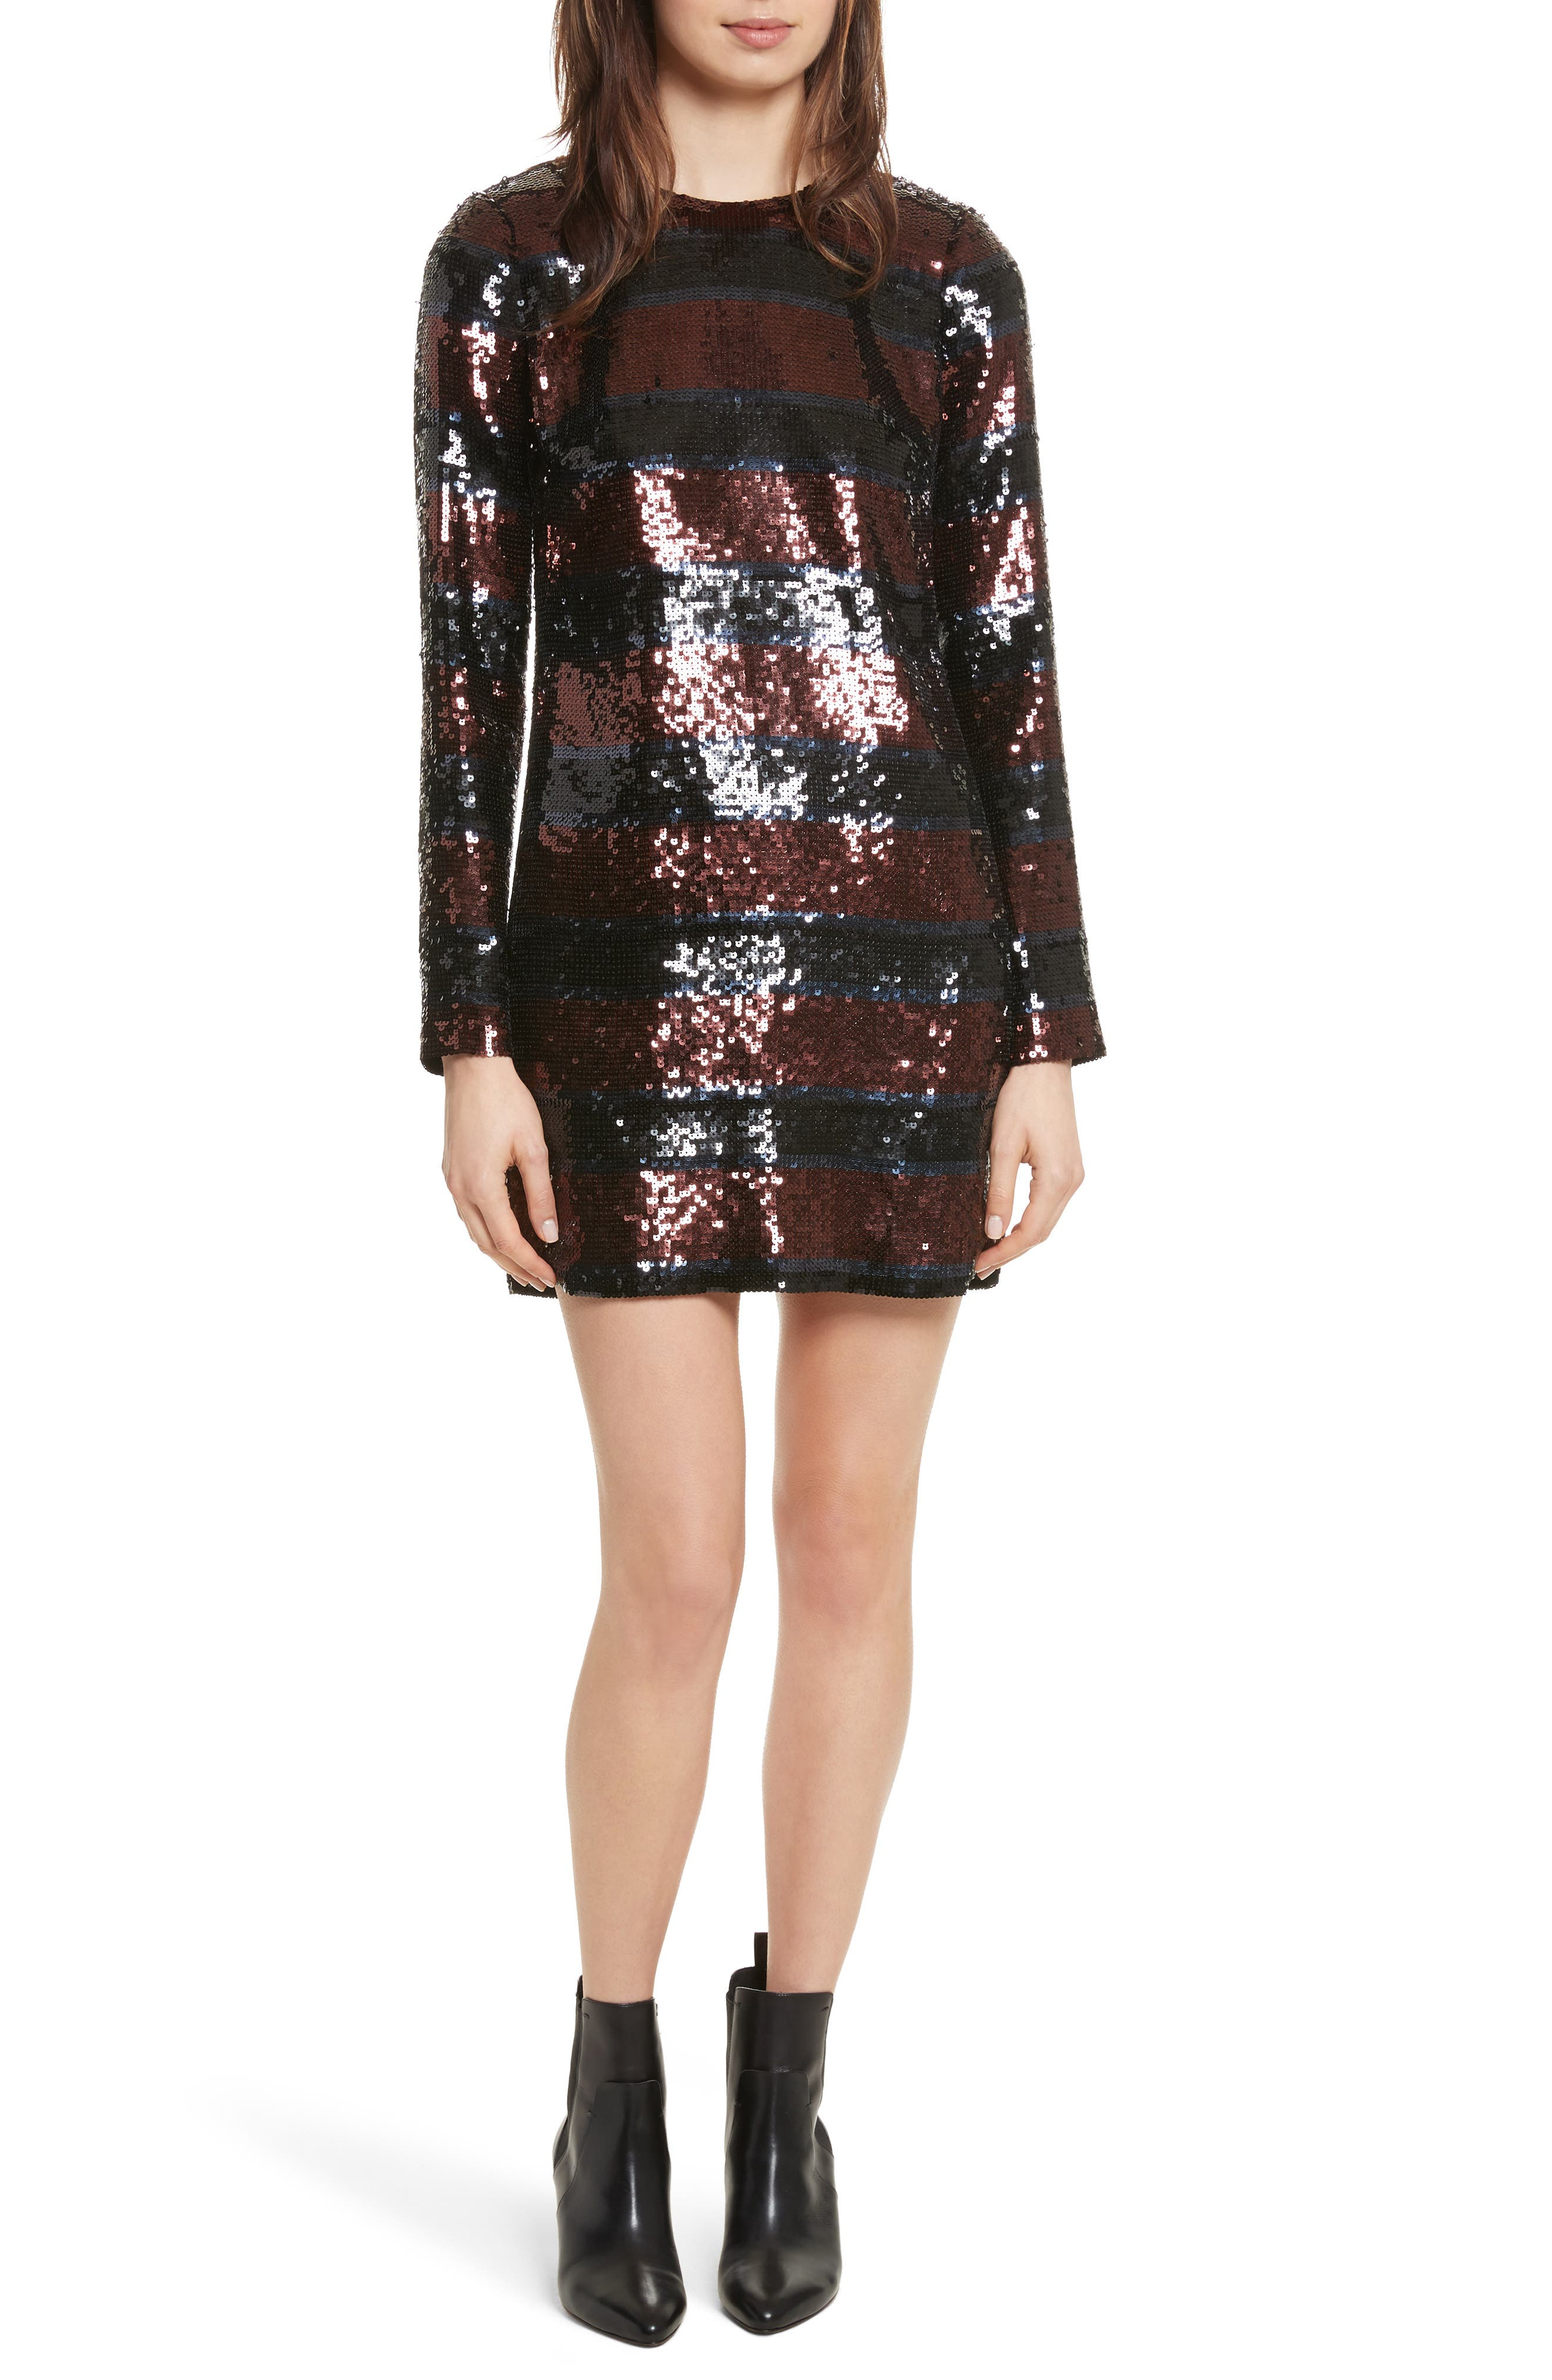 Breakers Sequin Dress,                             Main thumbnail 1, color,                             931